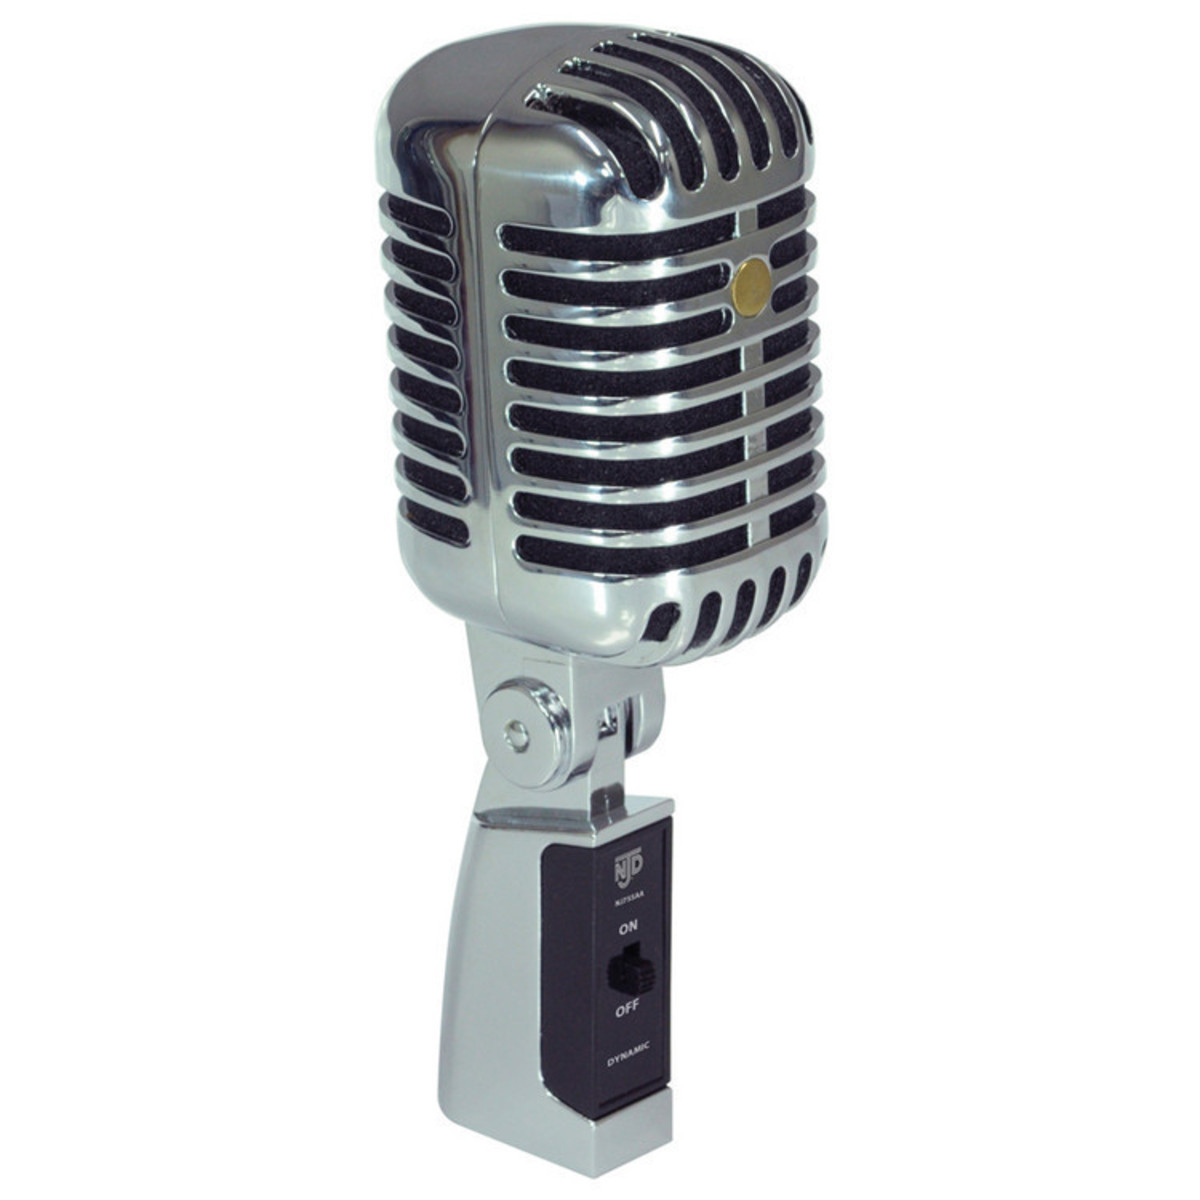 njd professional retro style microphone at